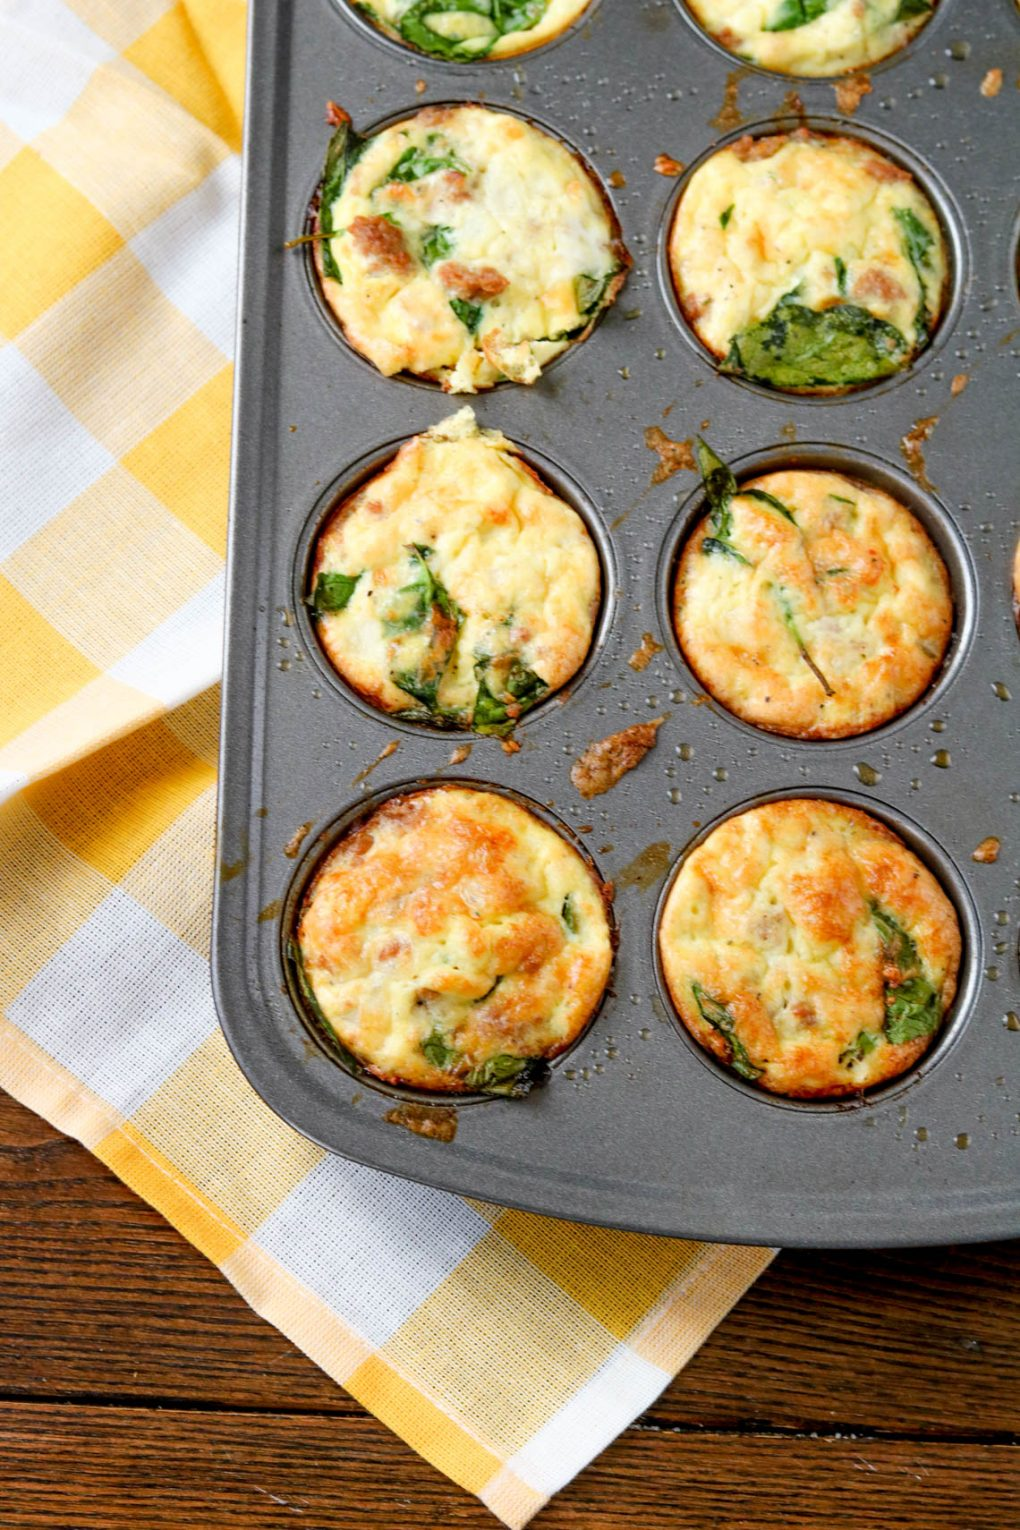 A muffin tin with spinach sausage egg muffins. The silver muffin tin is sitting on a wood table with a yellow and white checkered towel underneath.